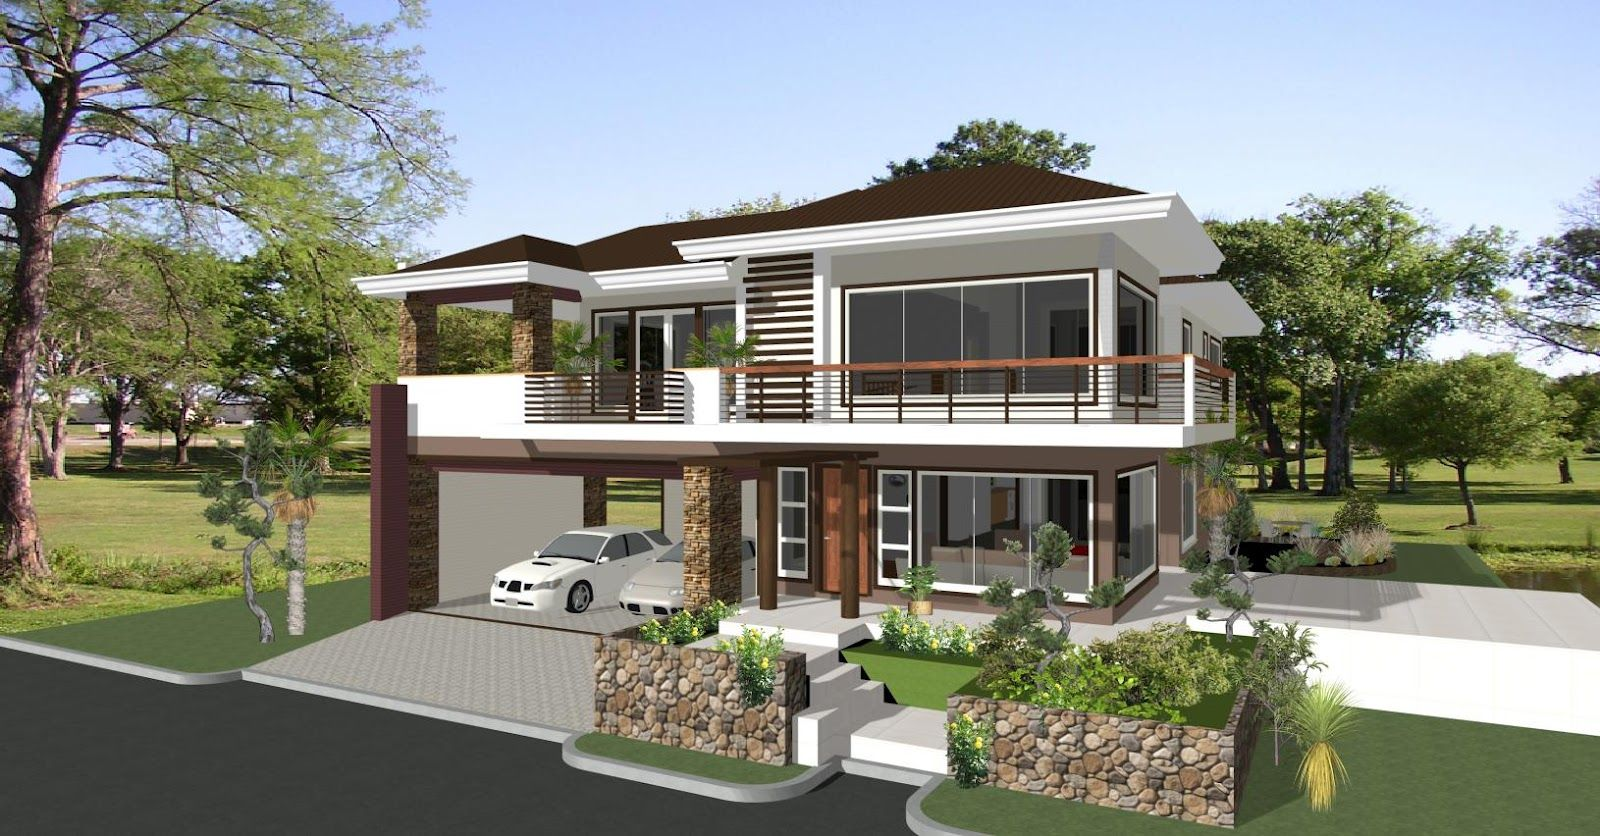 british west indies house plans | print elevation | view larger